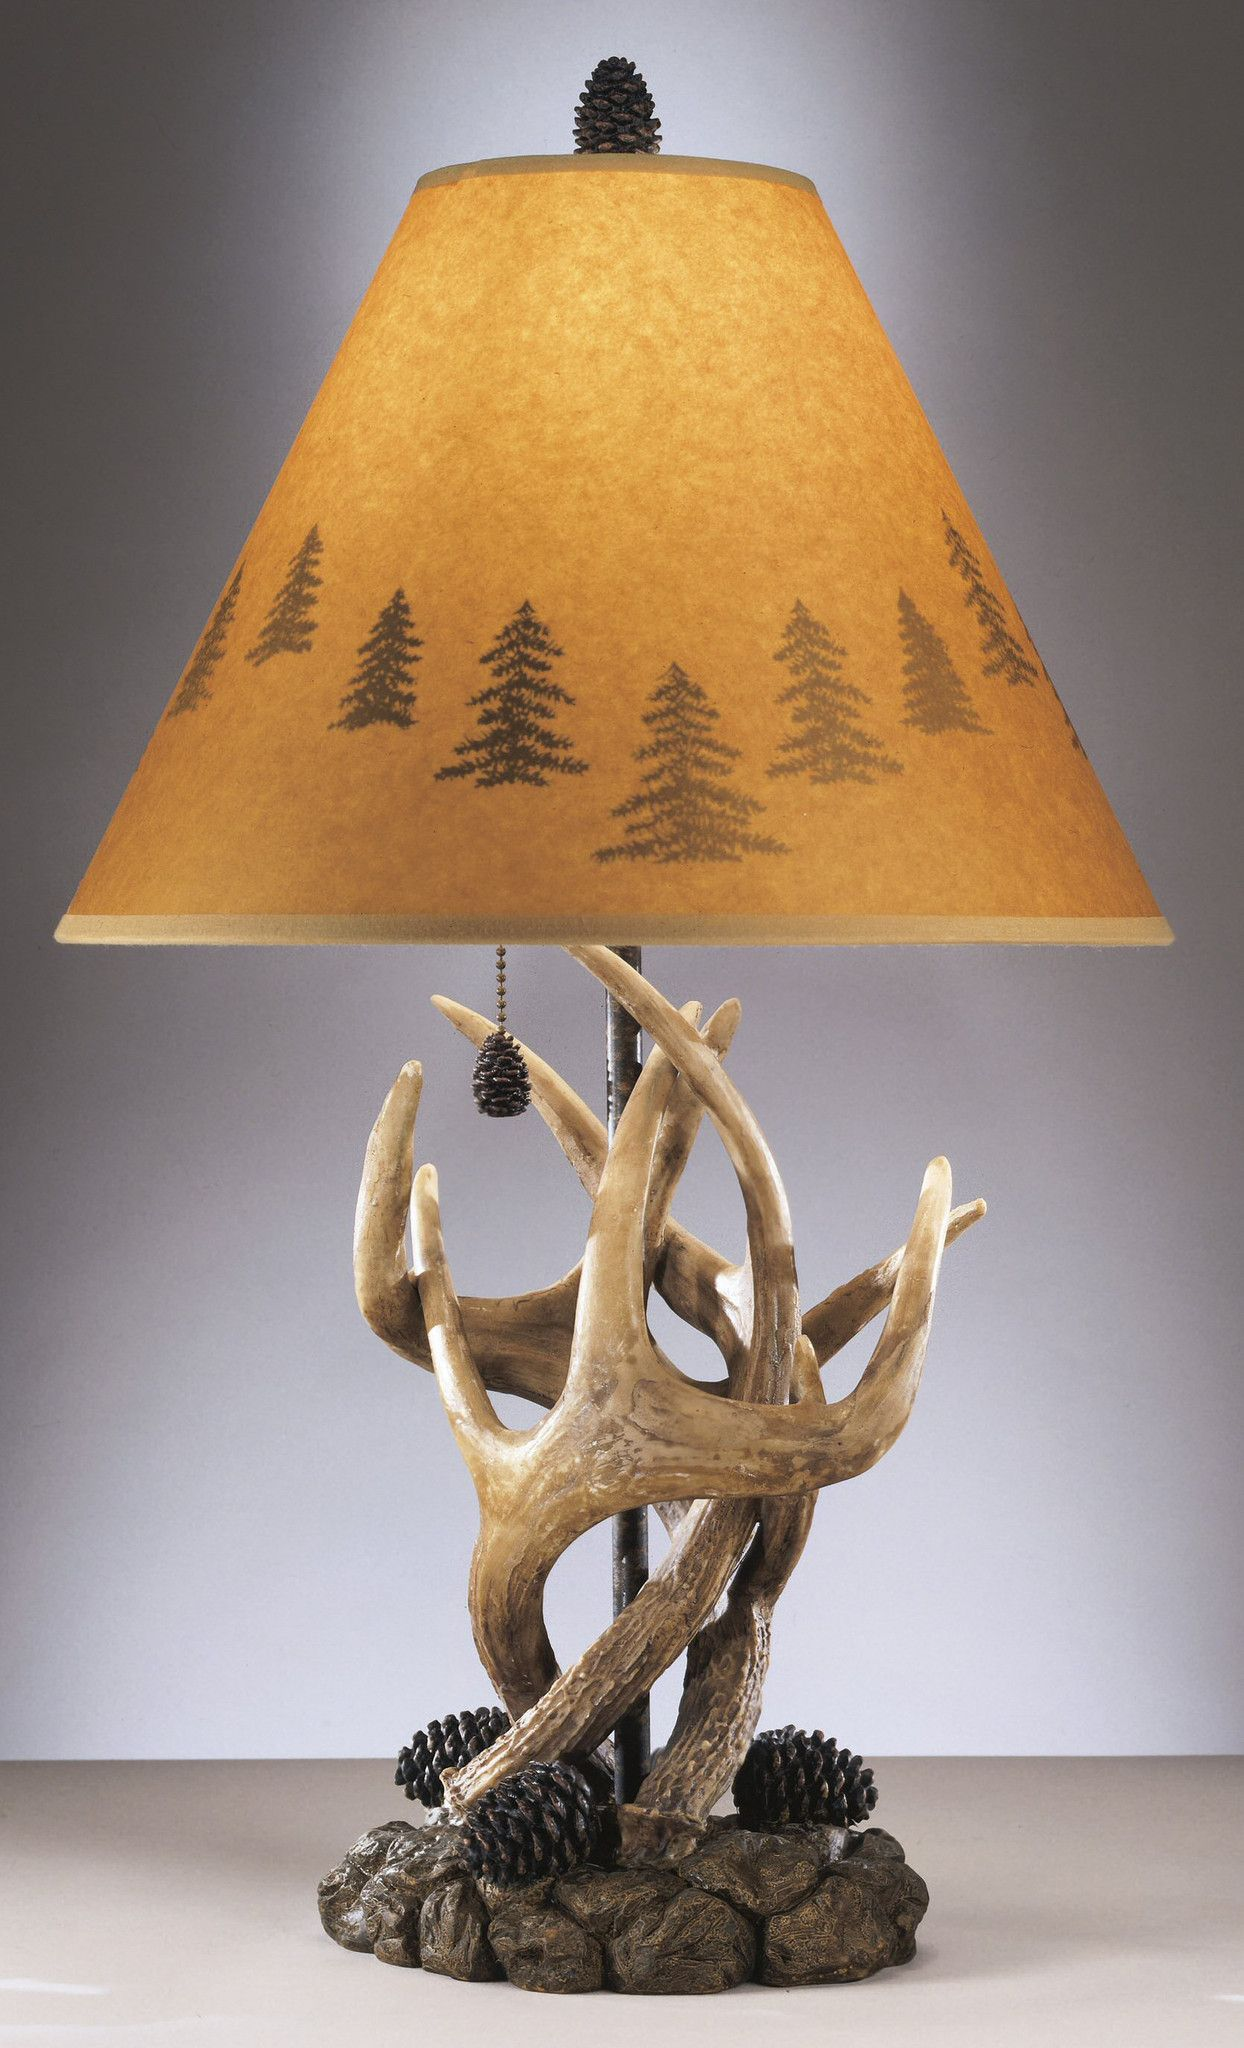 24 Inchh Derek Set Of 2 Of Rustic Antlers And Pine Cone Table Lamps